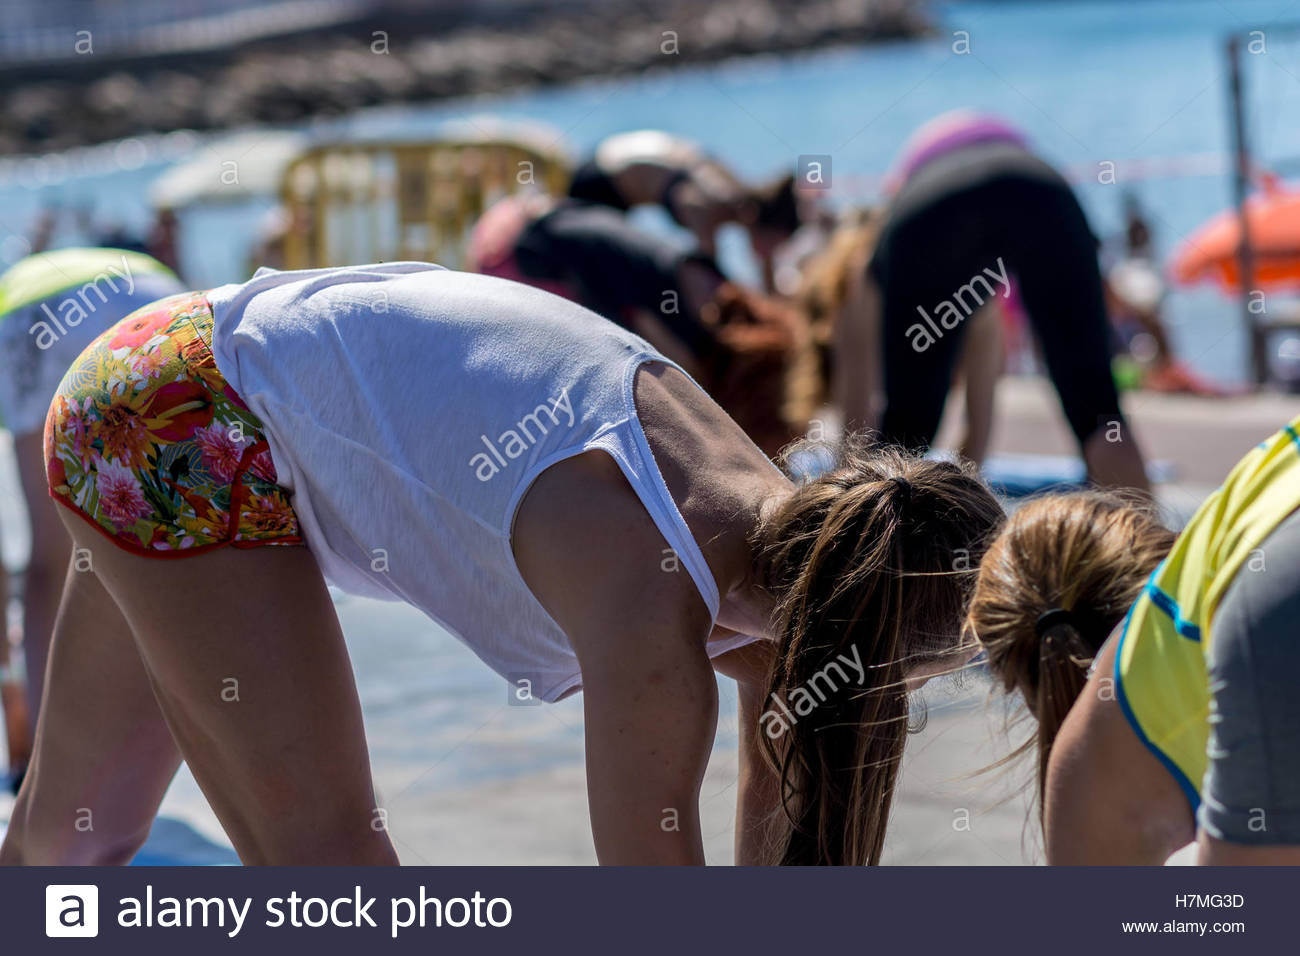 Women enjoying a fitness class outdoor on a sunny day. - Stock Image